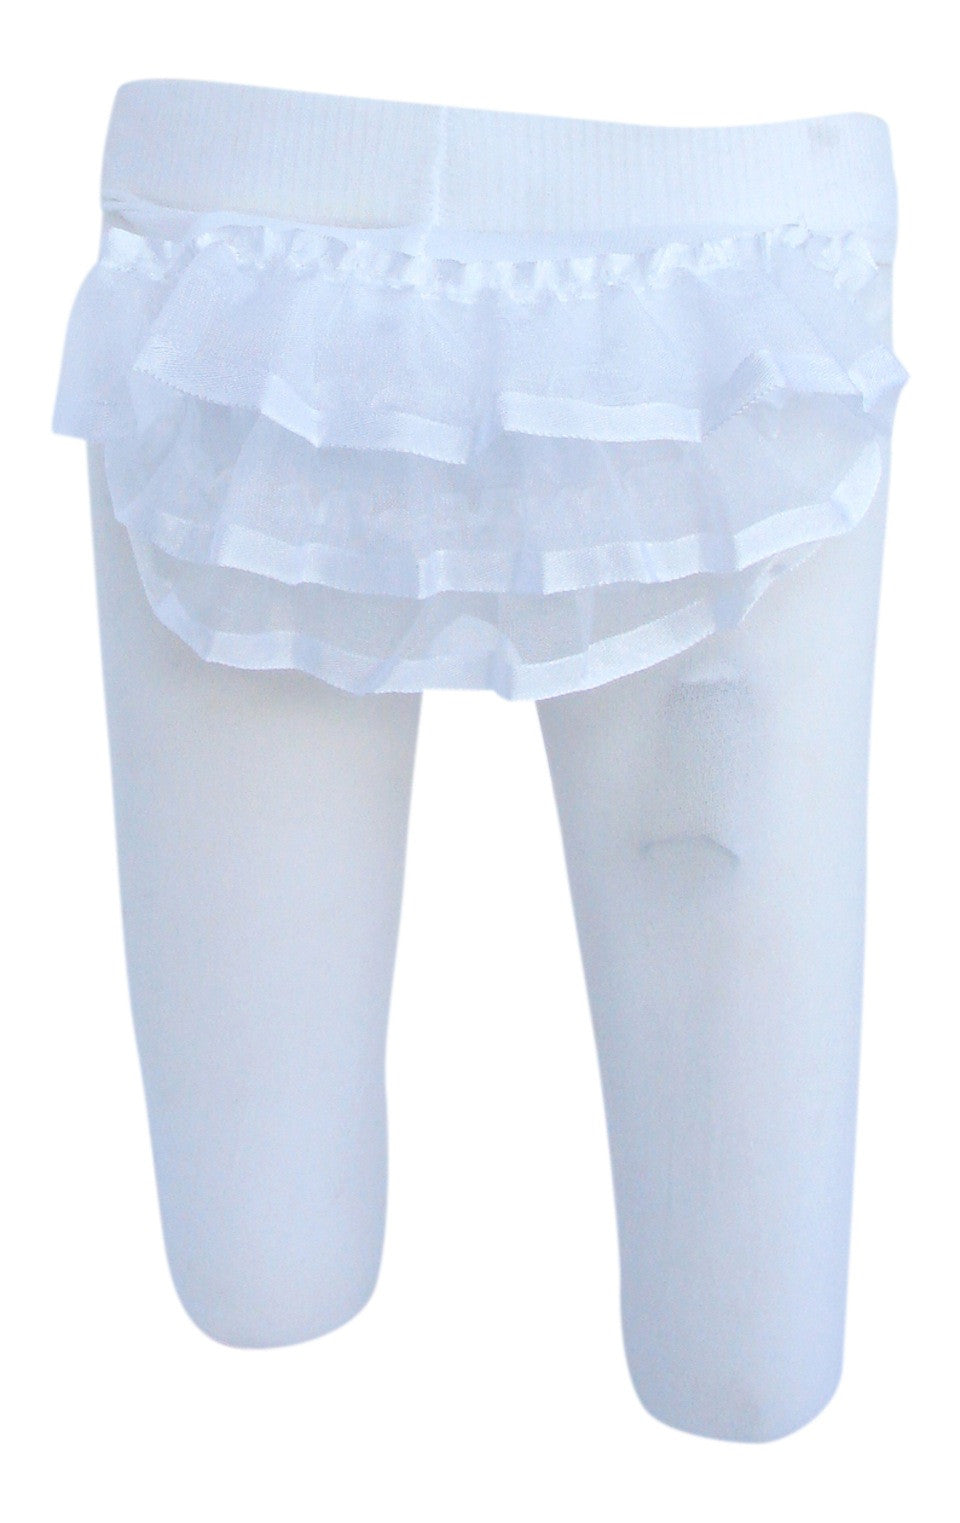 2-Pack Sheer Ribbon Rhumba Tights (White)